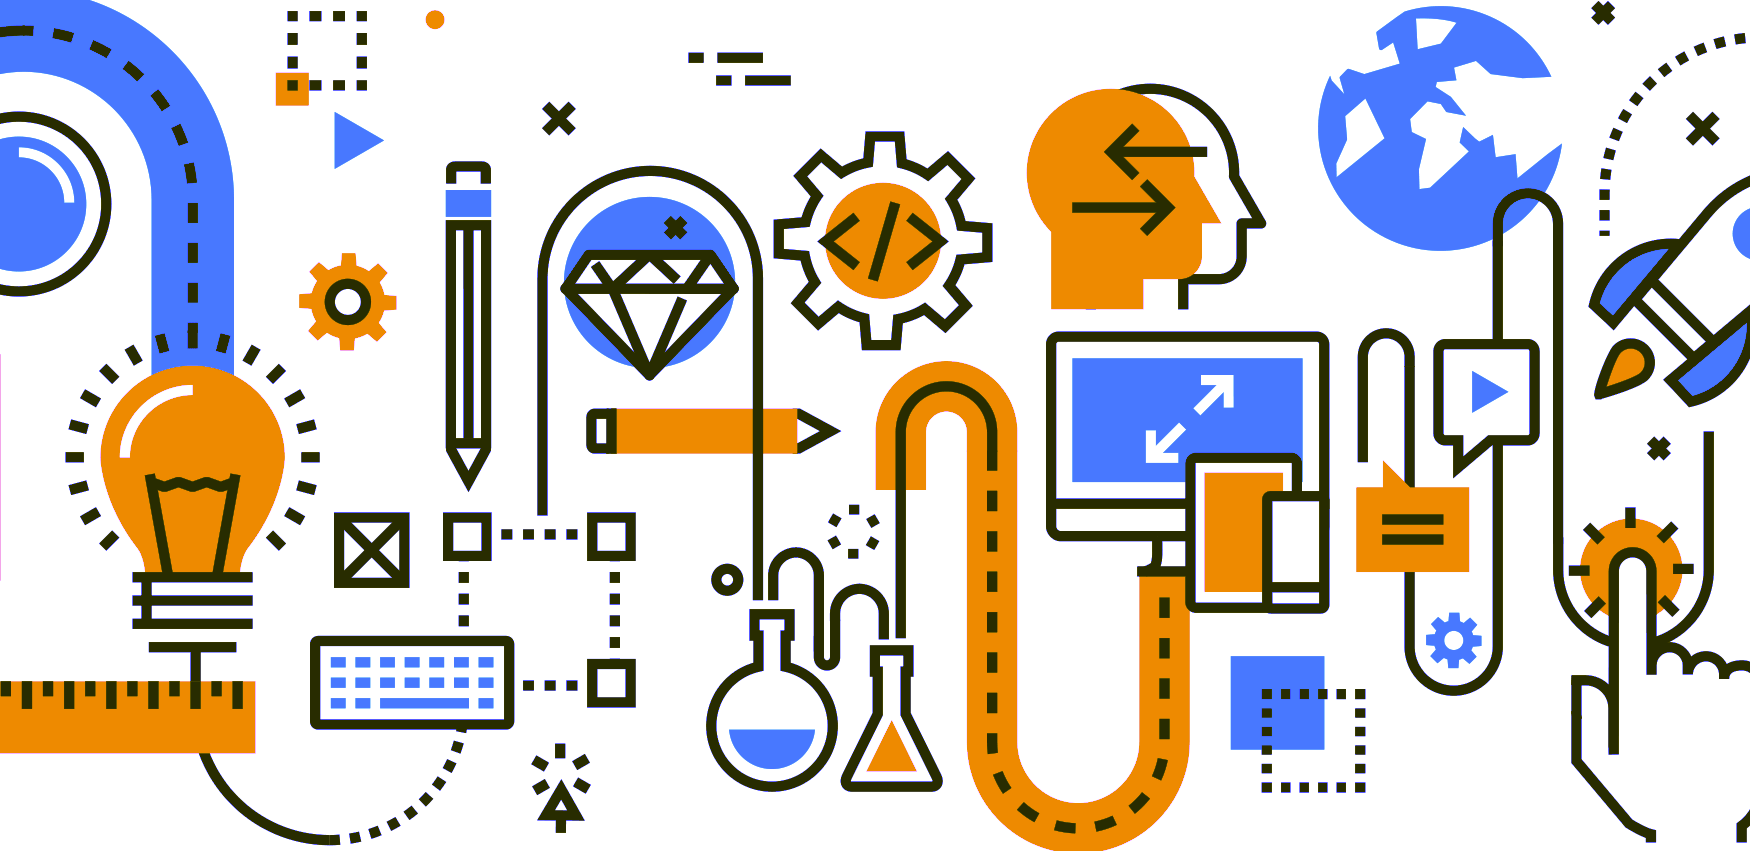 Hypothesis clipart data quality. Scientific analysis pipelines and